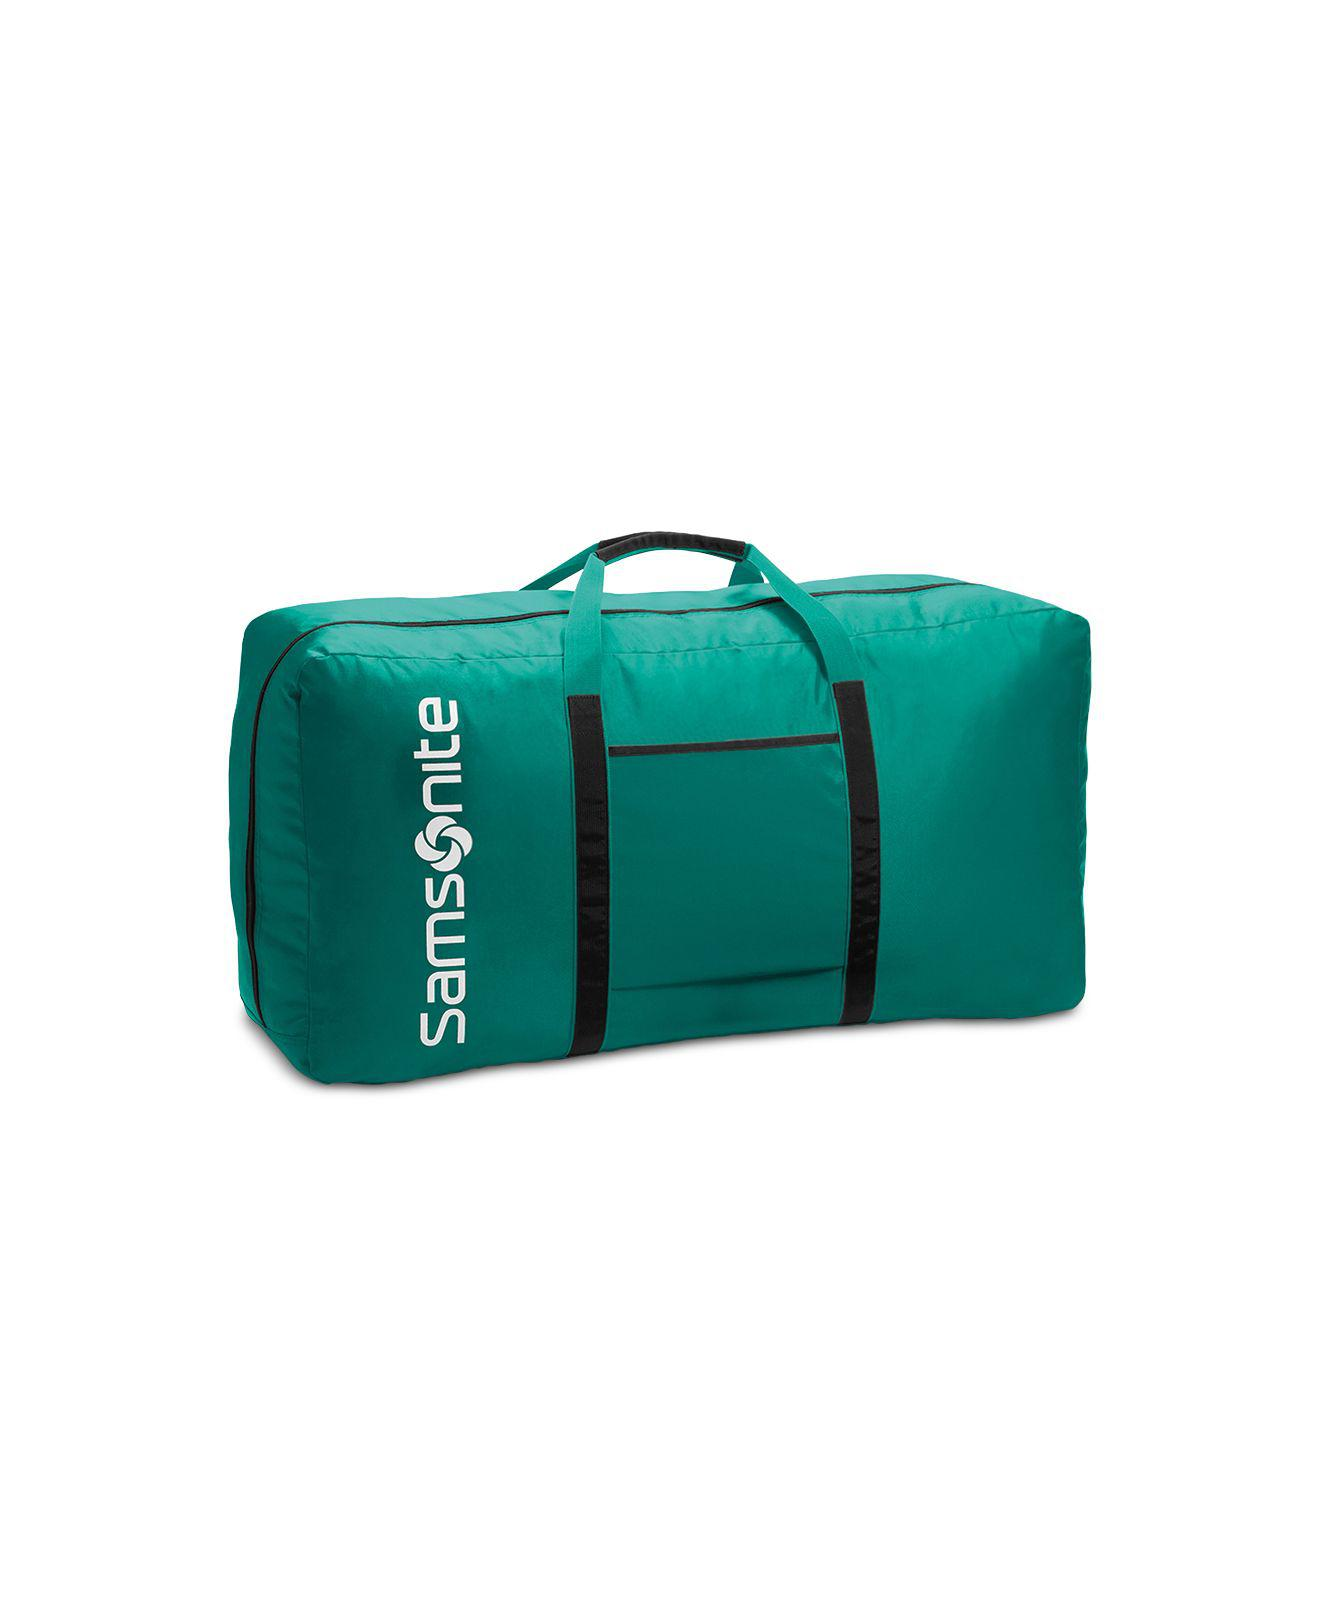 Lyst - Samsonite Tote-a-ton Duffle Bag in Green for Men - Save ... 15e5e84b79715